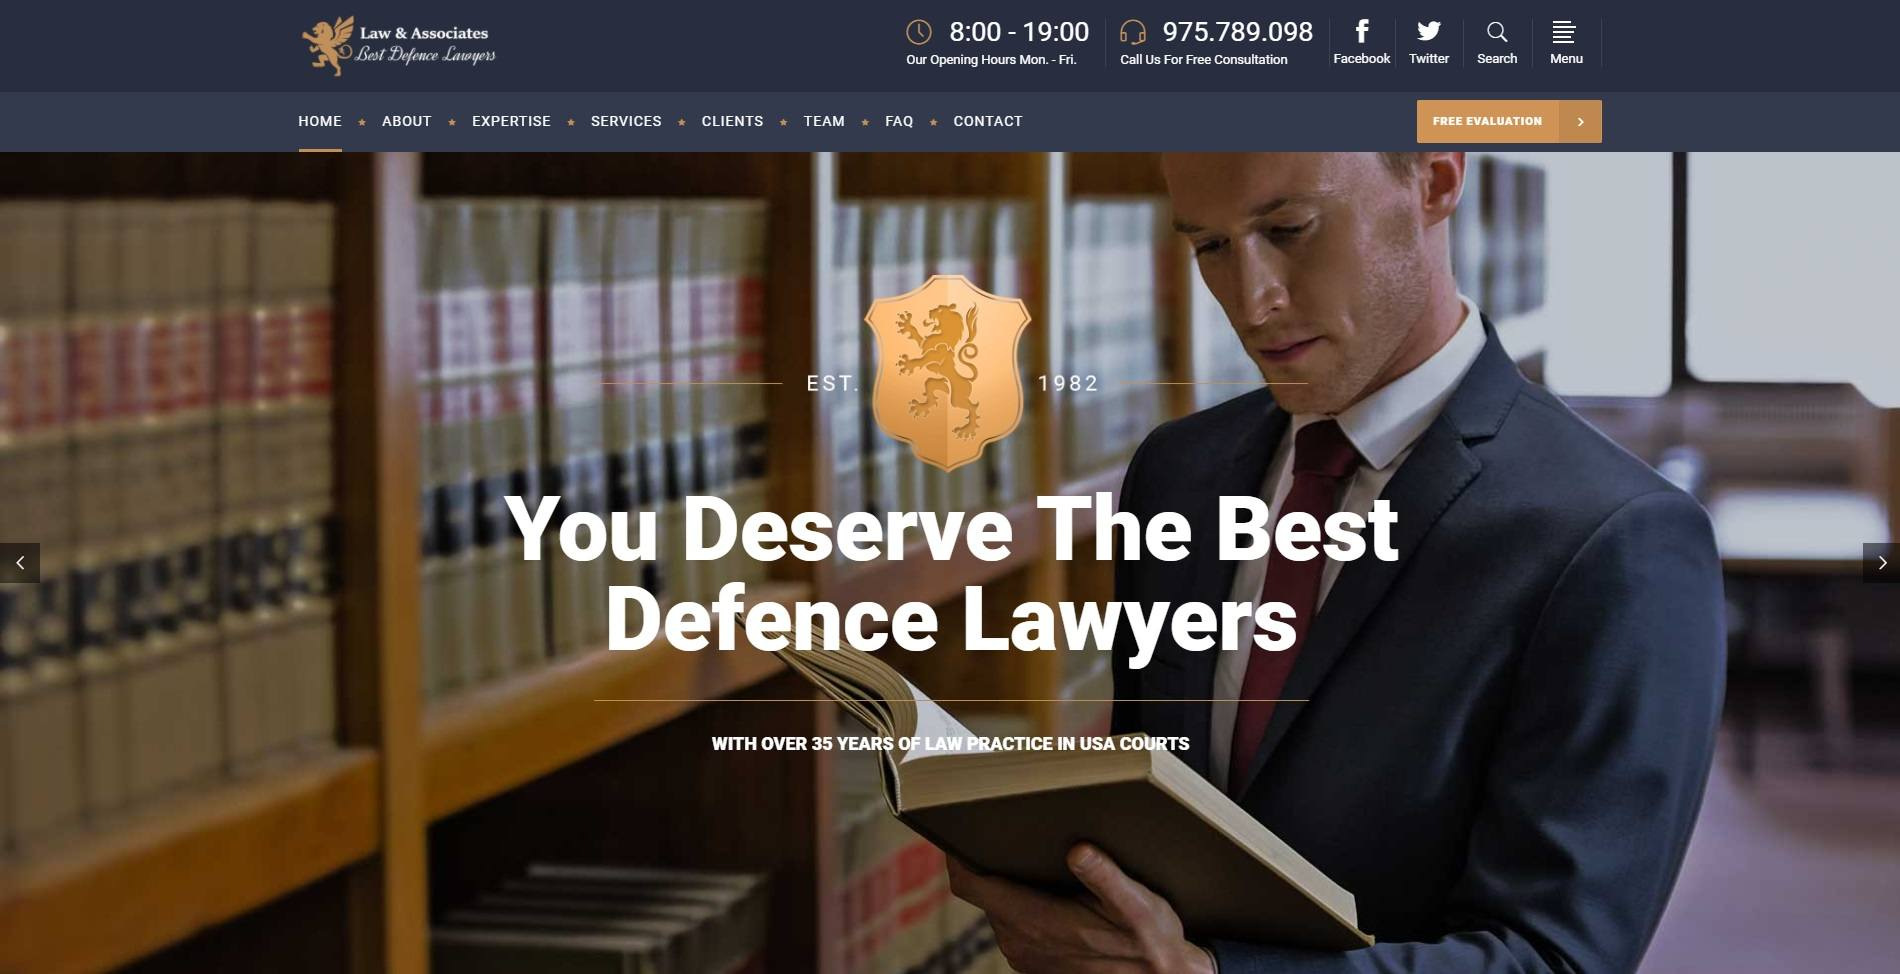 A Company Website For Law Firms & Lawyers